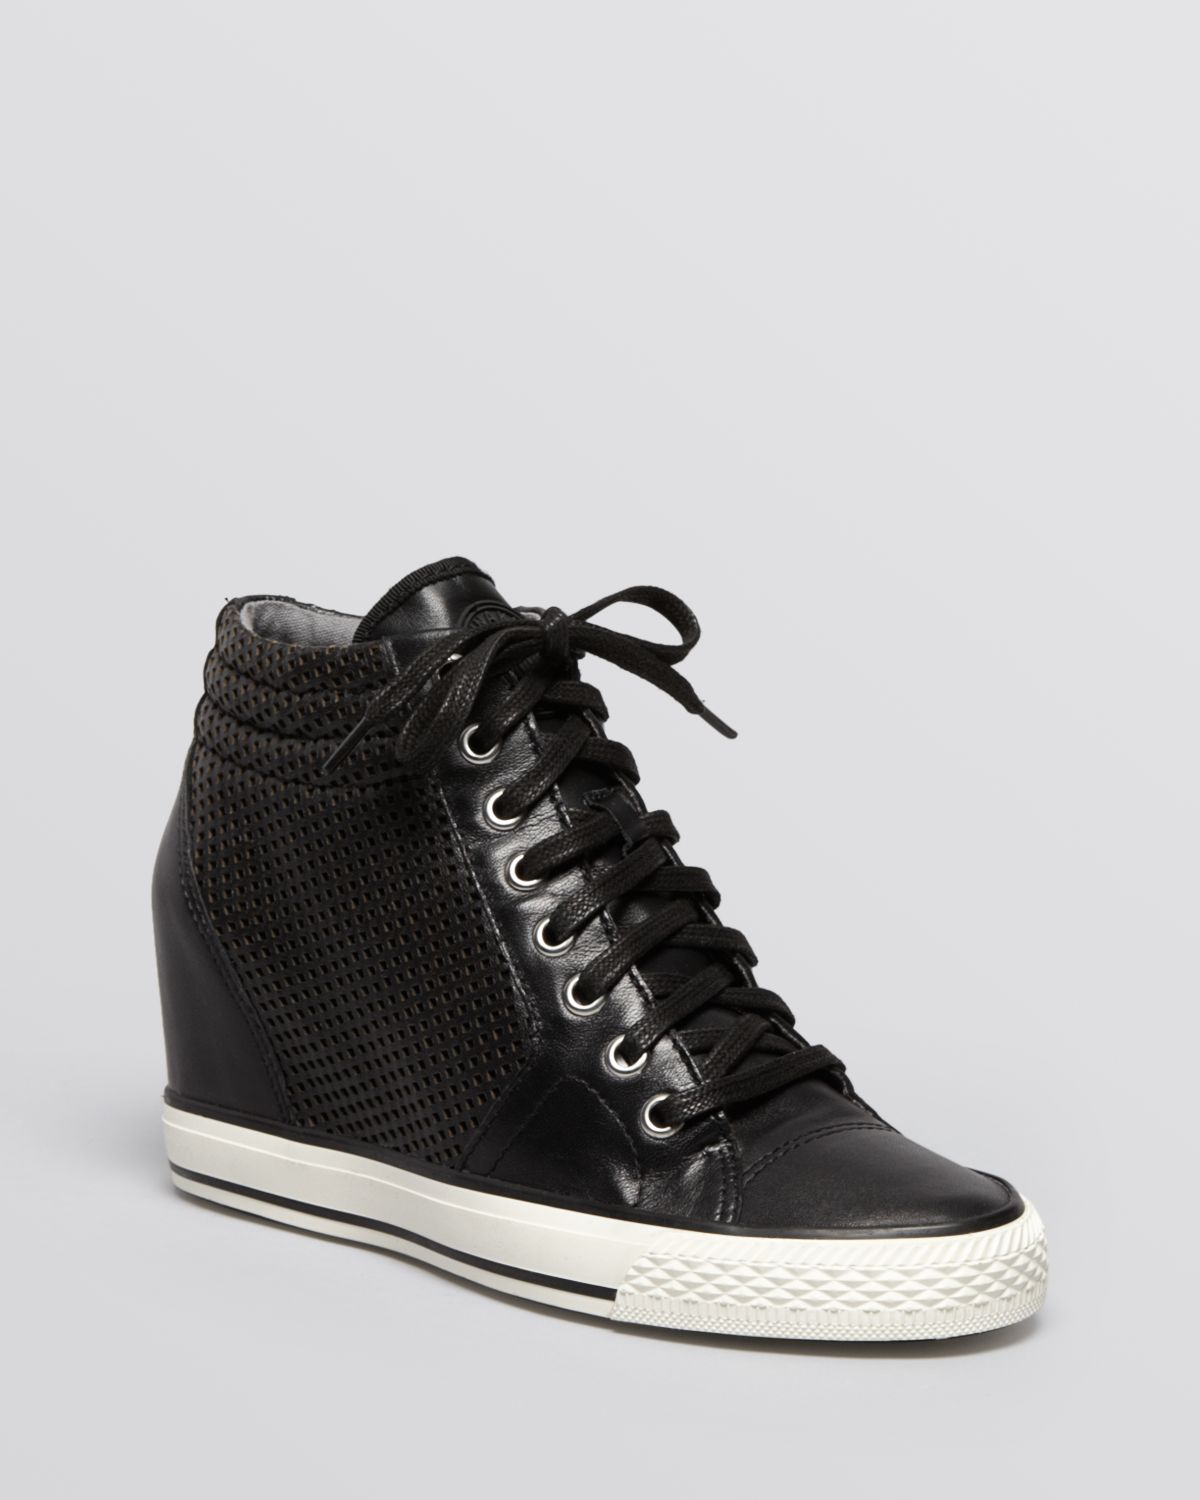 dkny lace up high top wedge sneakers in black lyst